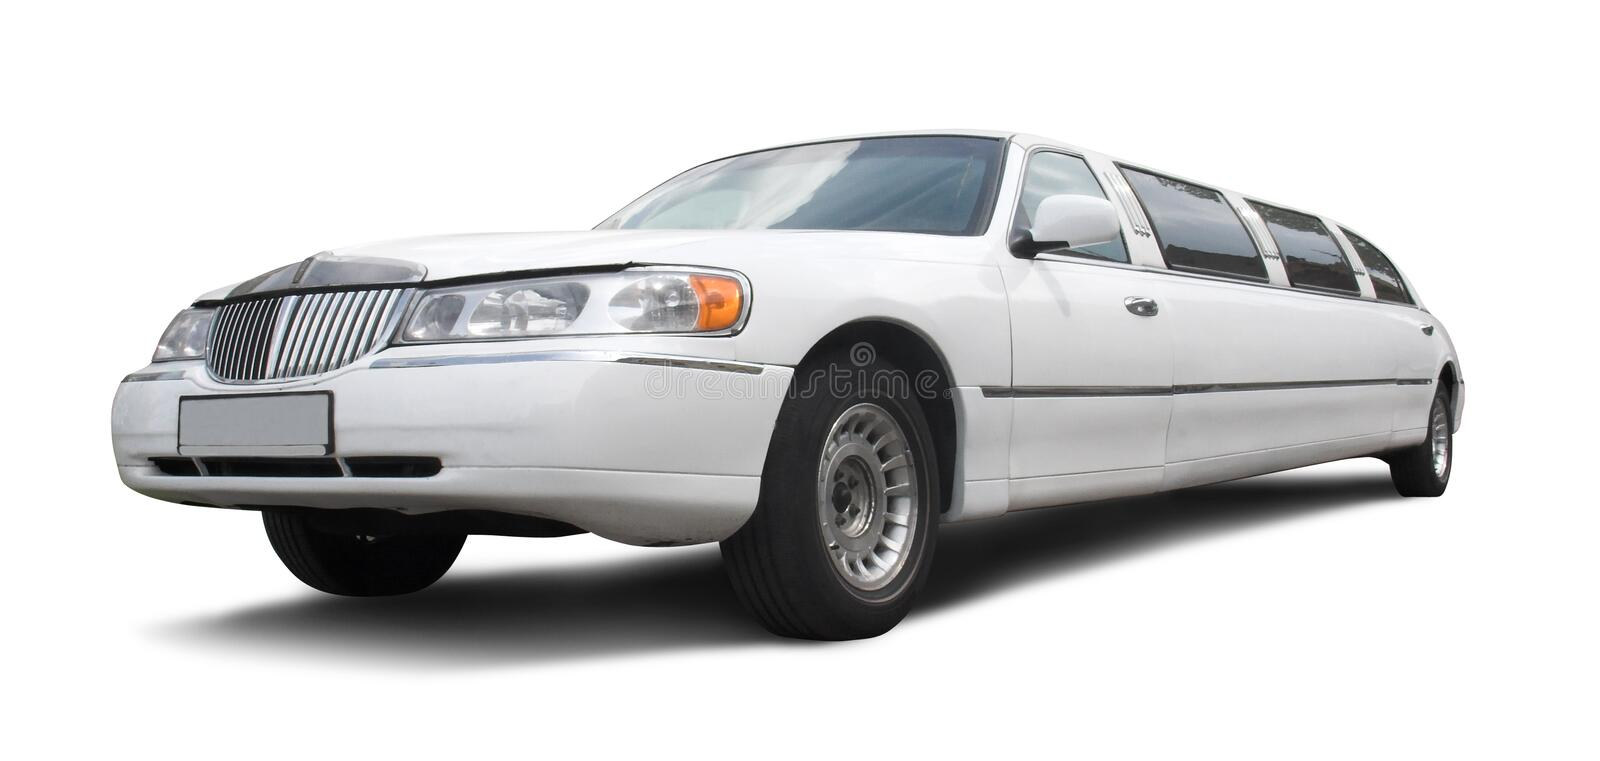 Long white limousine stock images